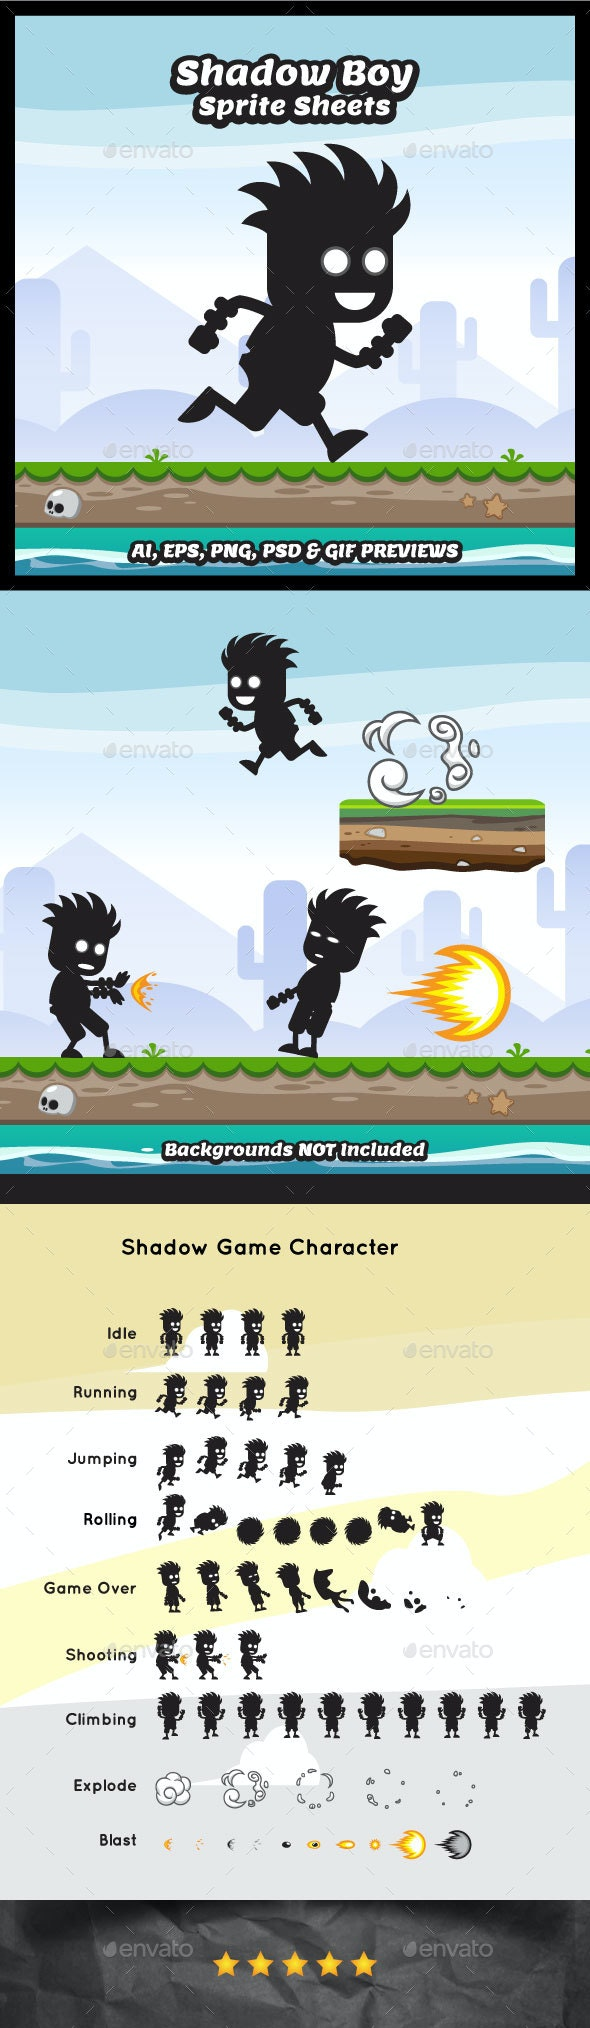 Shadow Boy Game Character Sprite Sheets - Sprites Game Assets